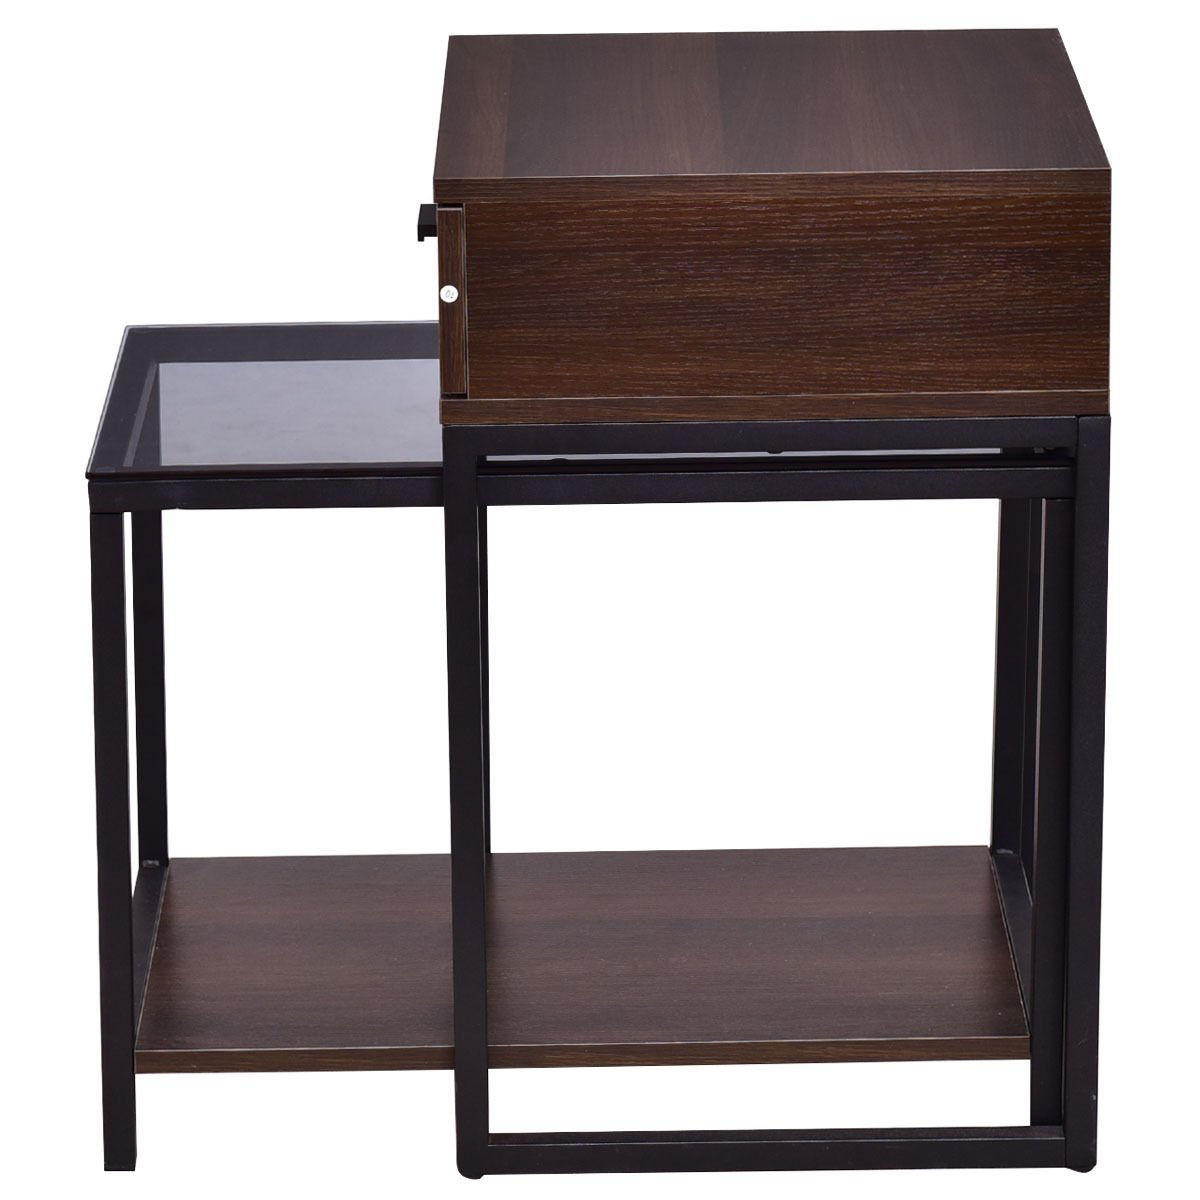 Nesting Table Coffee Table Side Table End Table Metal Frame Wood Glass Top 2PCS by White Bear & Brown Rabbit (Image #2)